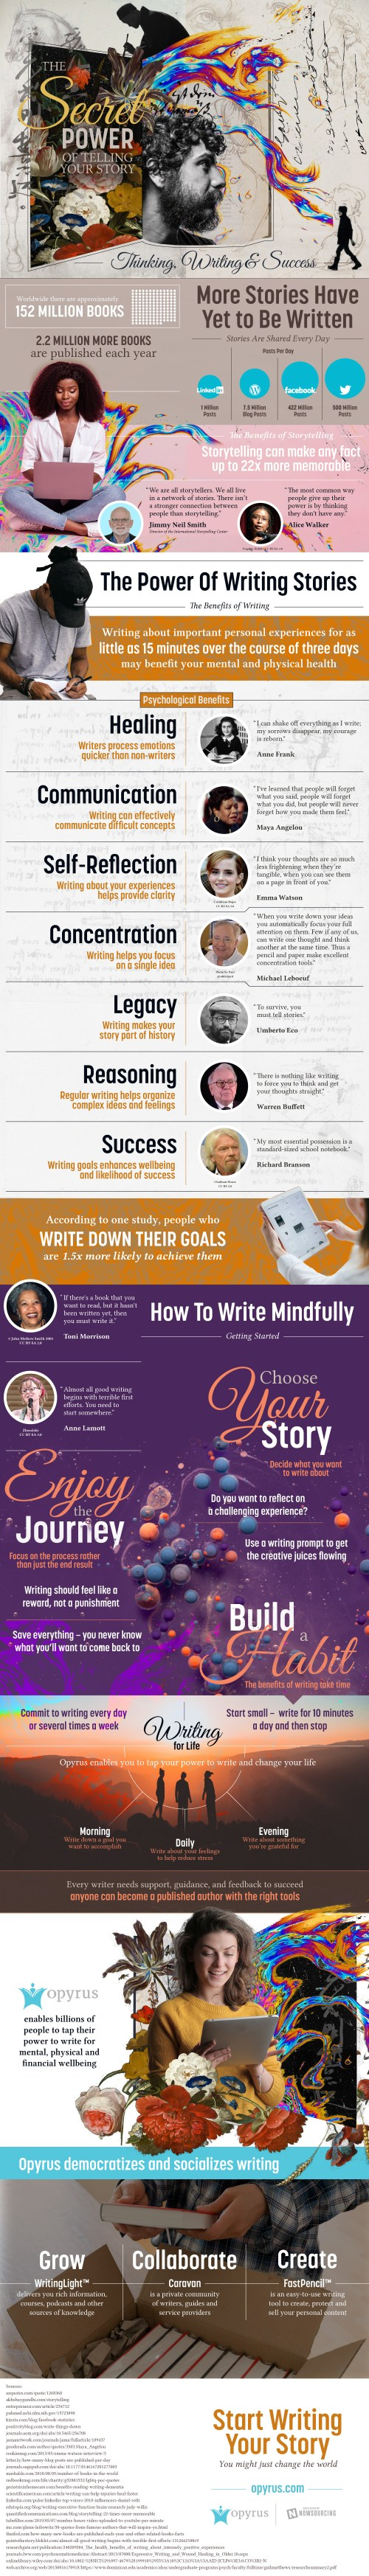 The Secret Power of Telling Your Story